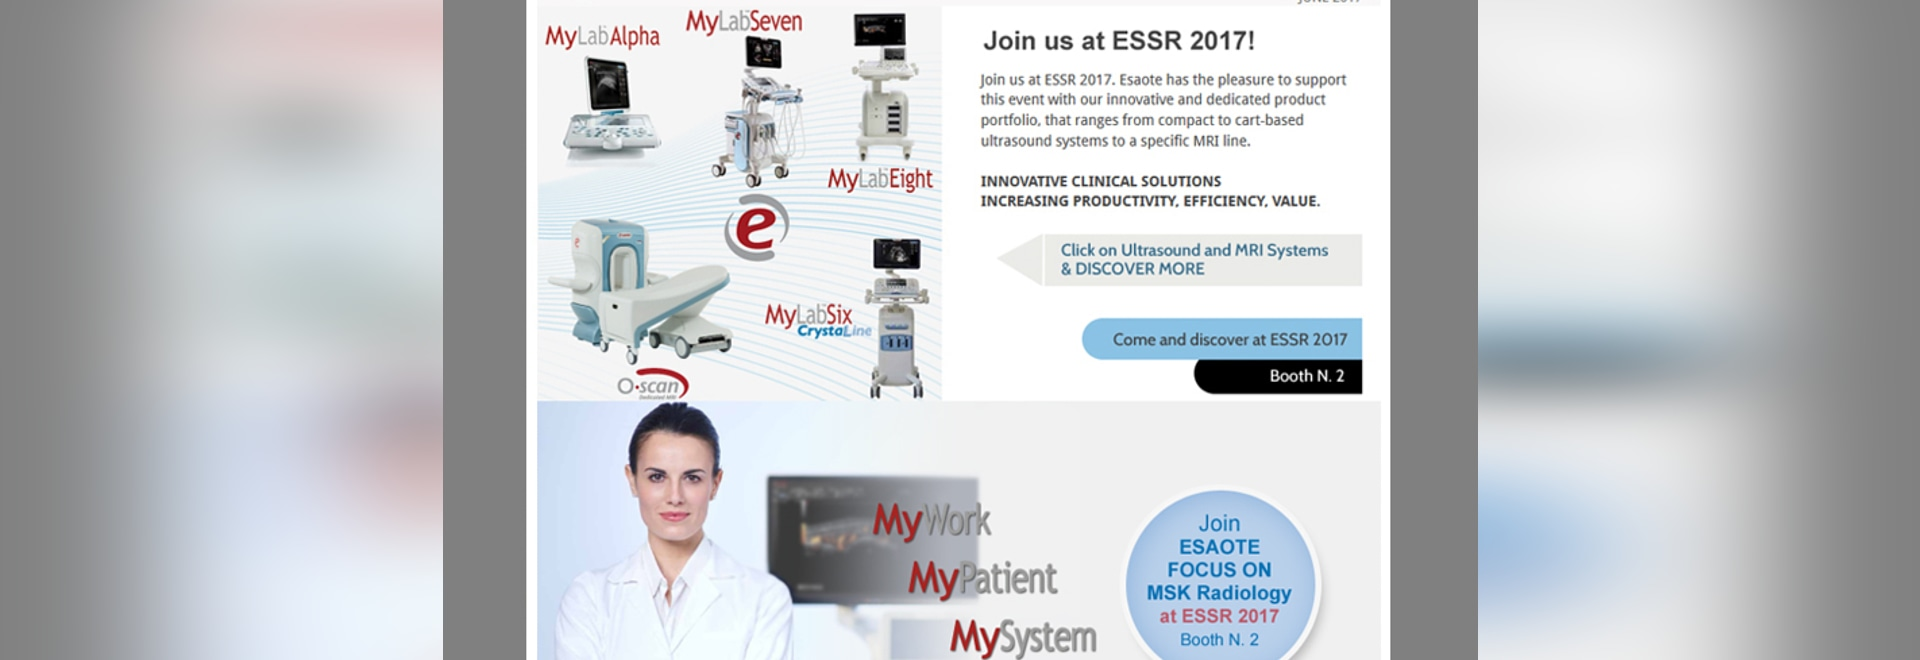 Esaote invites you at ESSR 2017 in Bari (Italy) to discover what's new - Booth N. 2